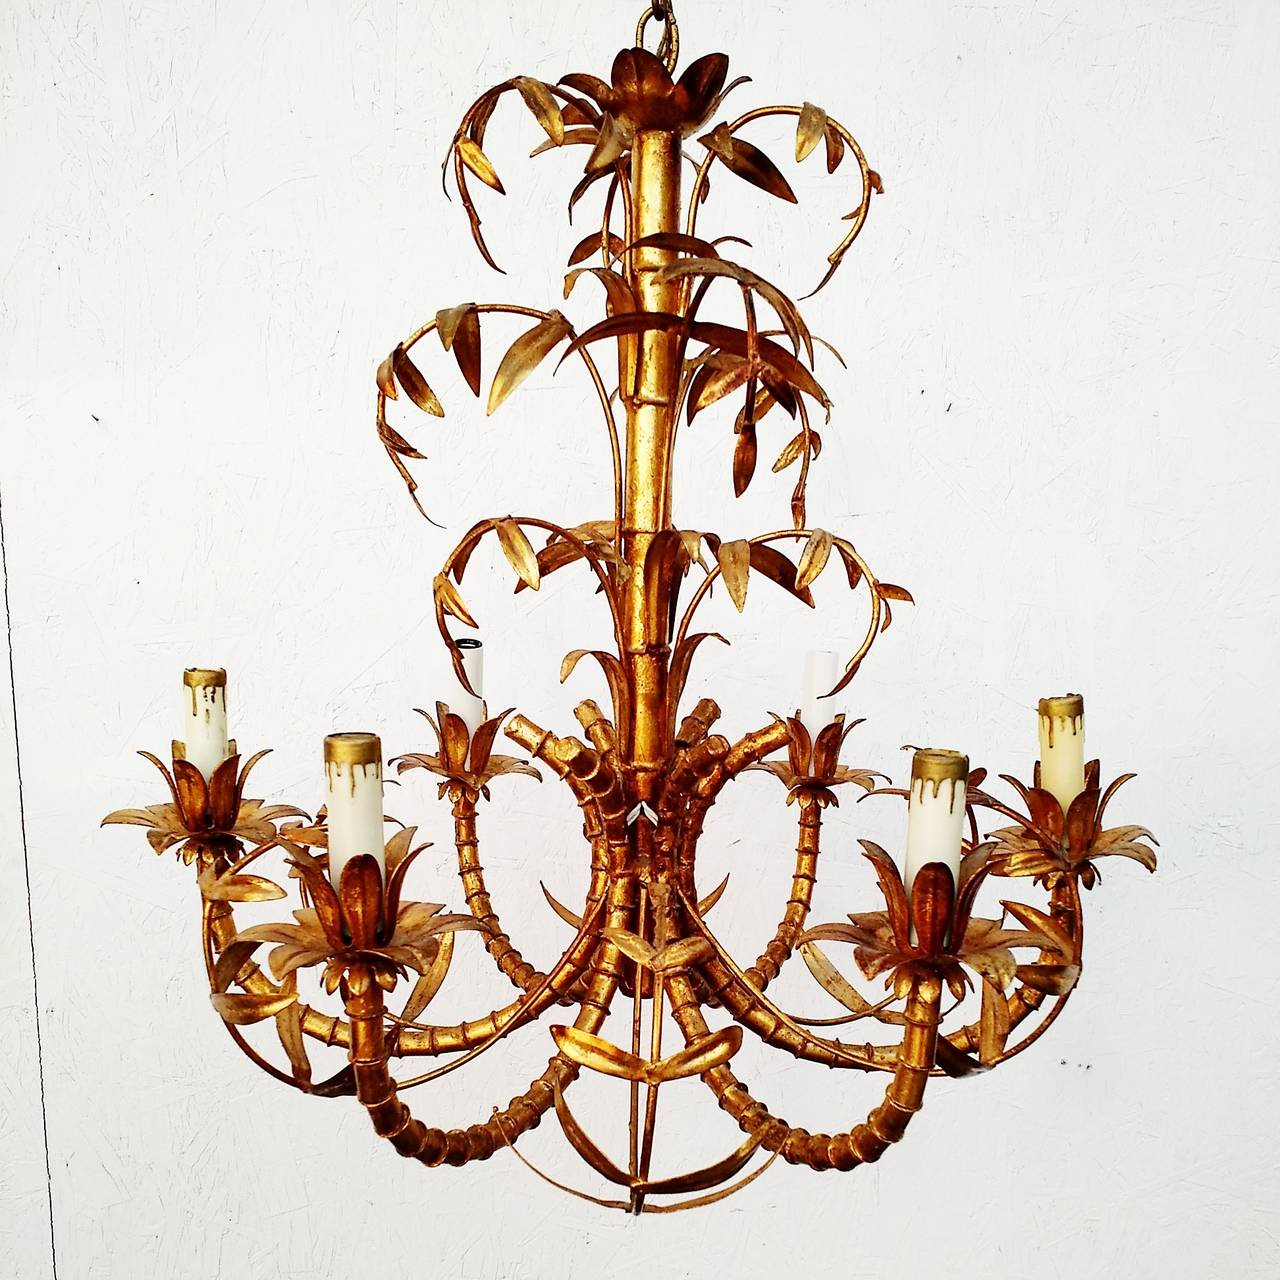 Hollywood regency gold gilded faux bamboo chandelier tole italy hollywood regency gold gilded faux bamboo chandelier tole italy 1950s 7 arubaitofo Gallery